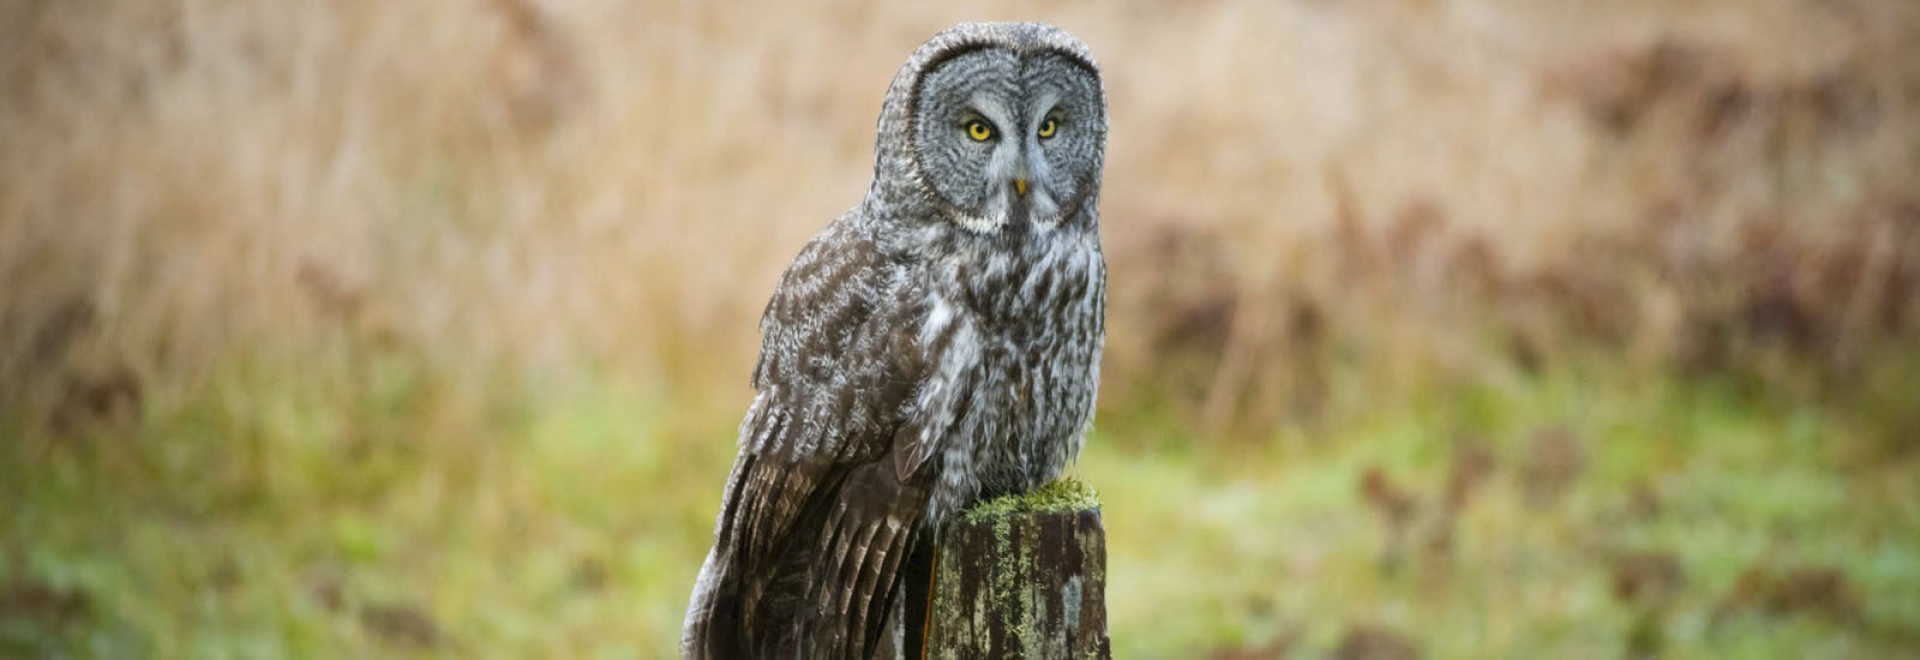 Great Grey owl visiting Prairie Creek Redwoods State Park